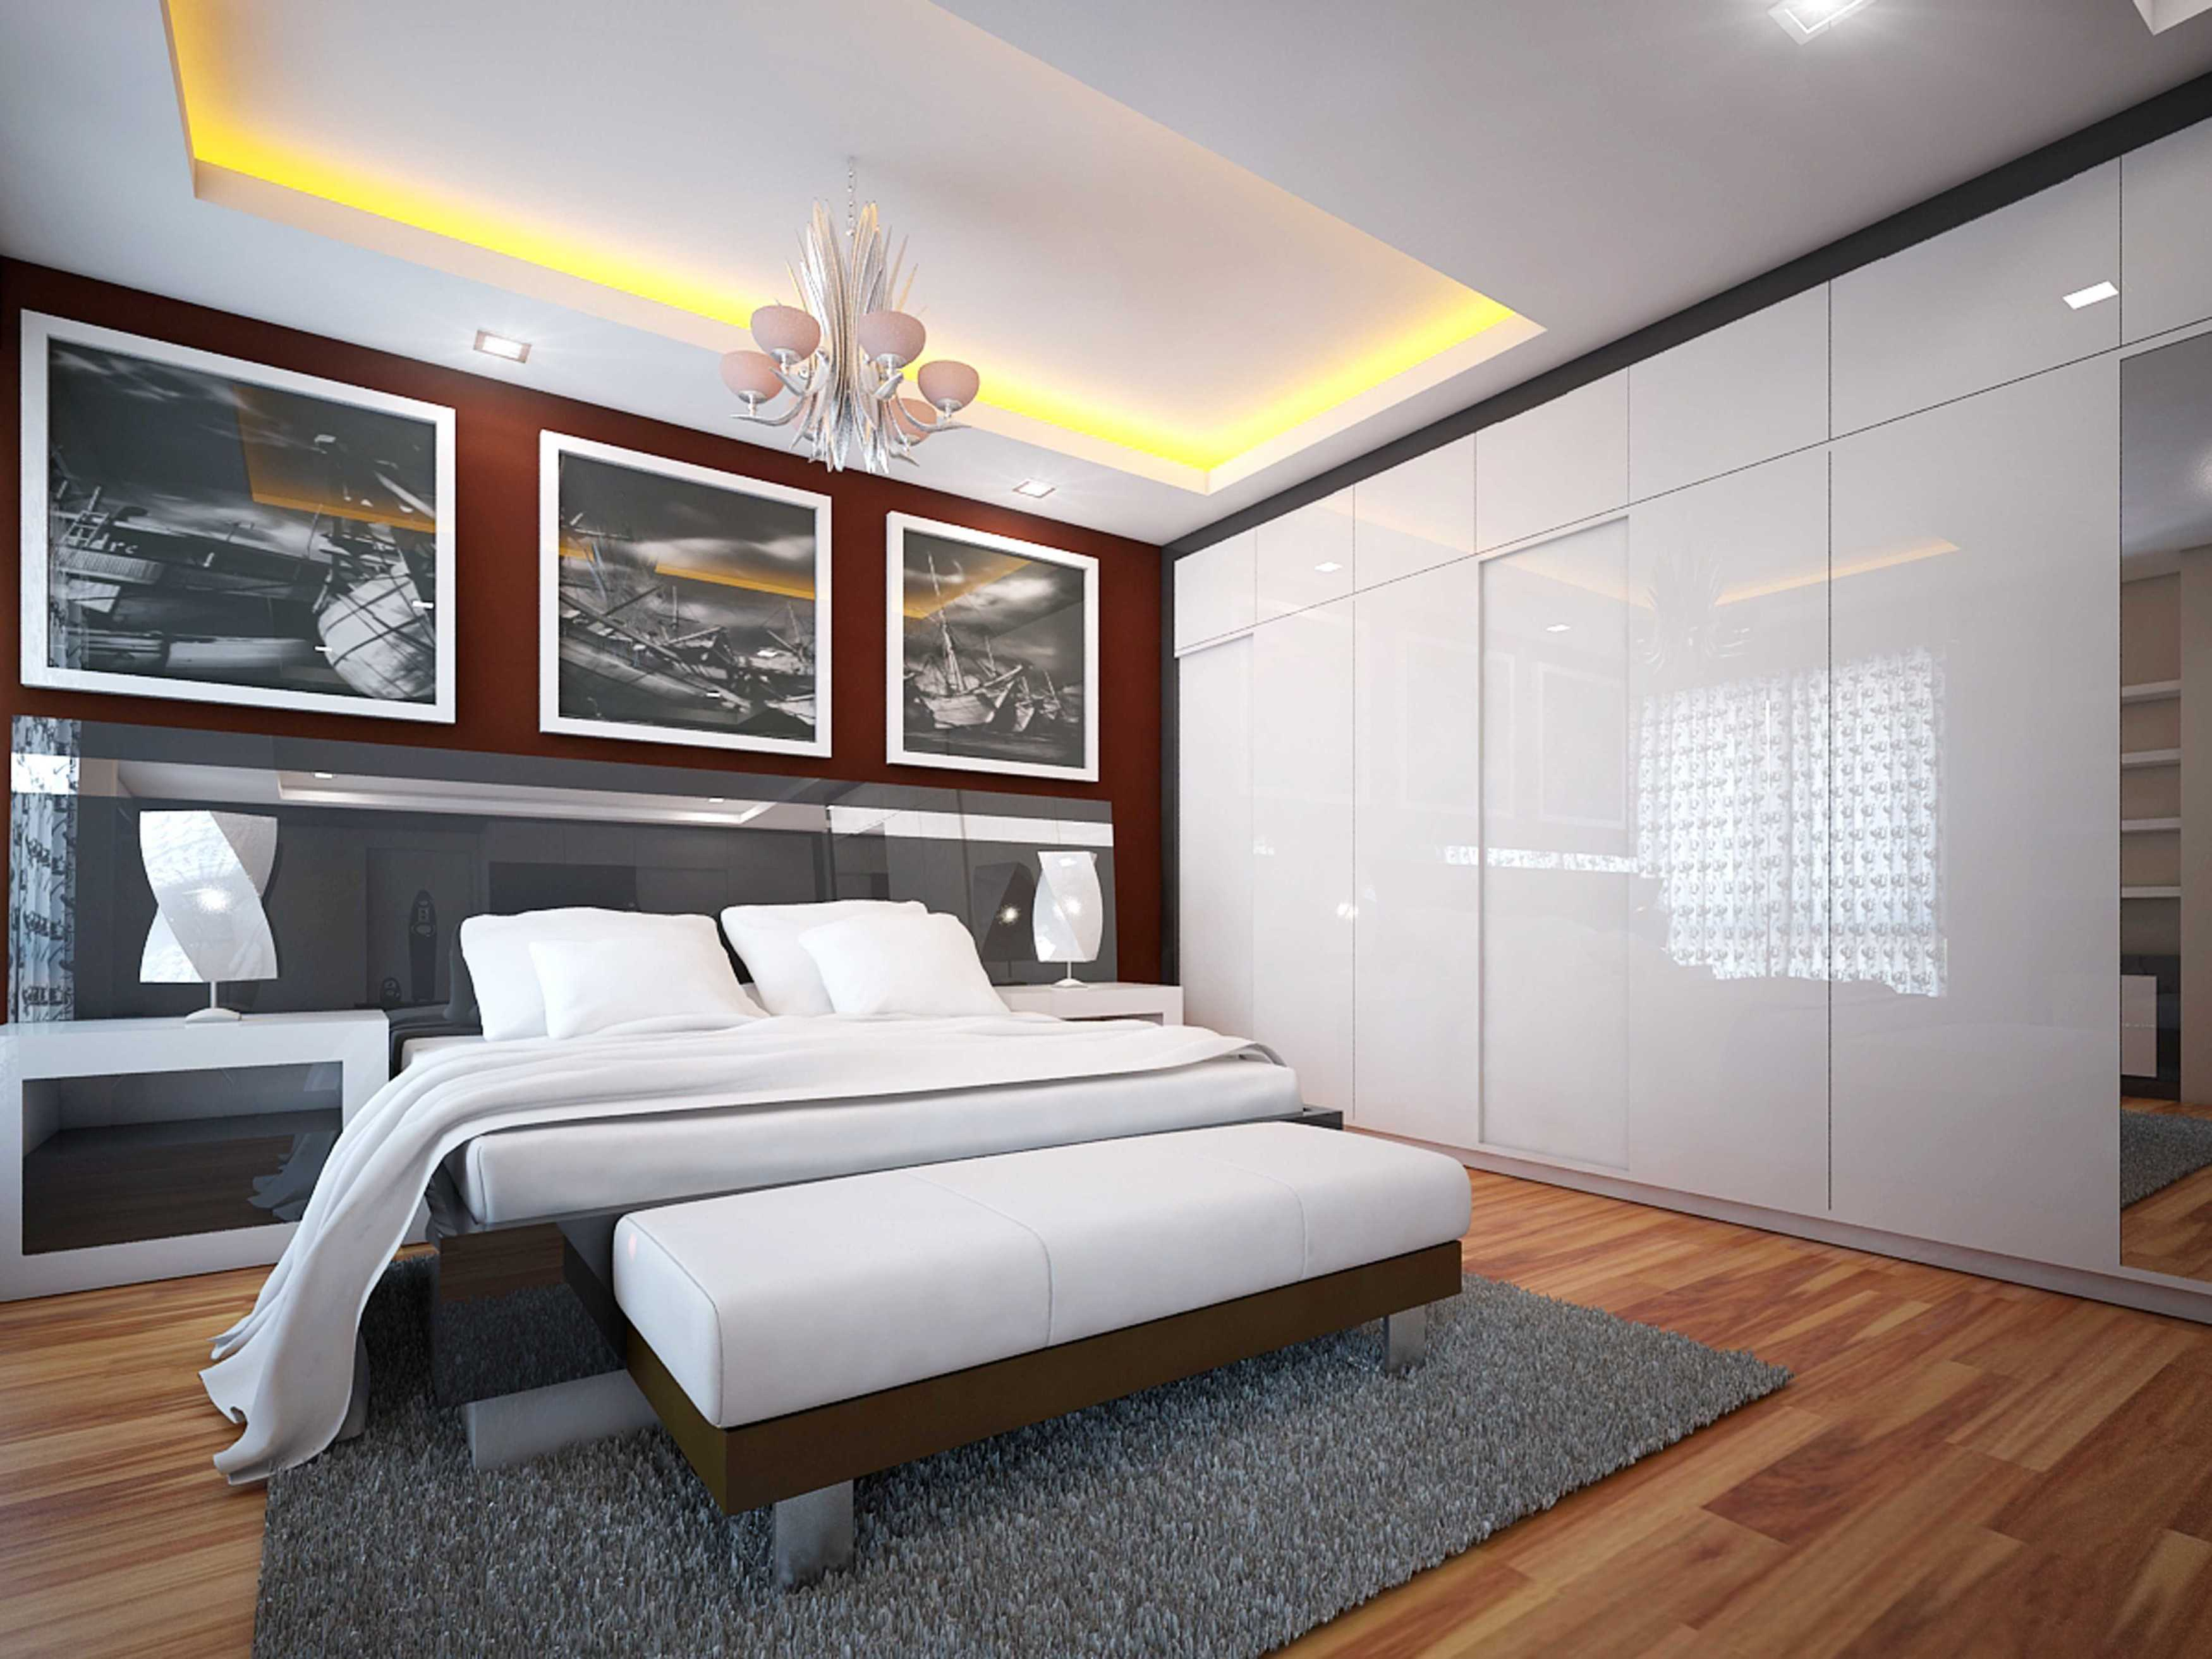 A2M Architect Indo S House Kota Makassar, Sulawesi Selatan, Indonesia Kota Makassar, Sulawesi Selatan, Indonesia Bedroom Modern  43626